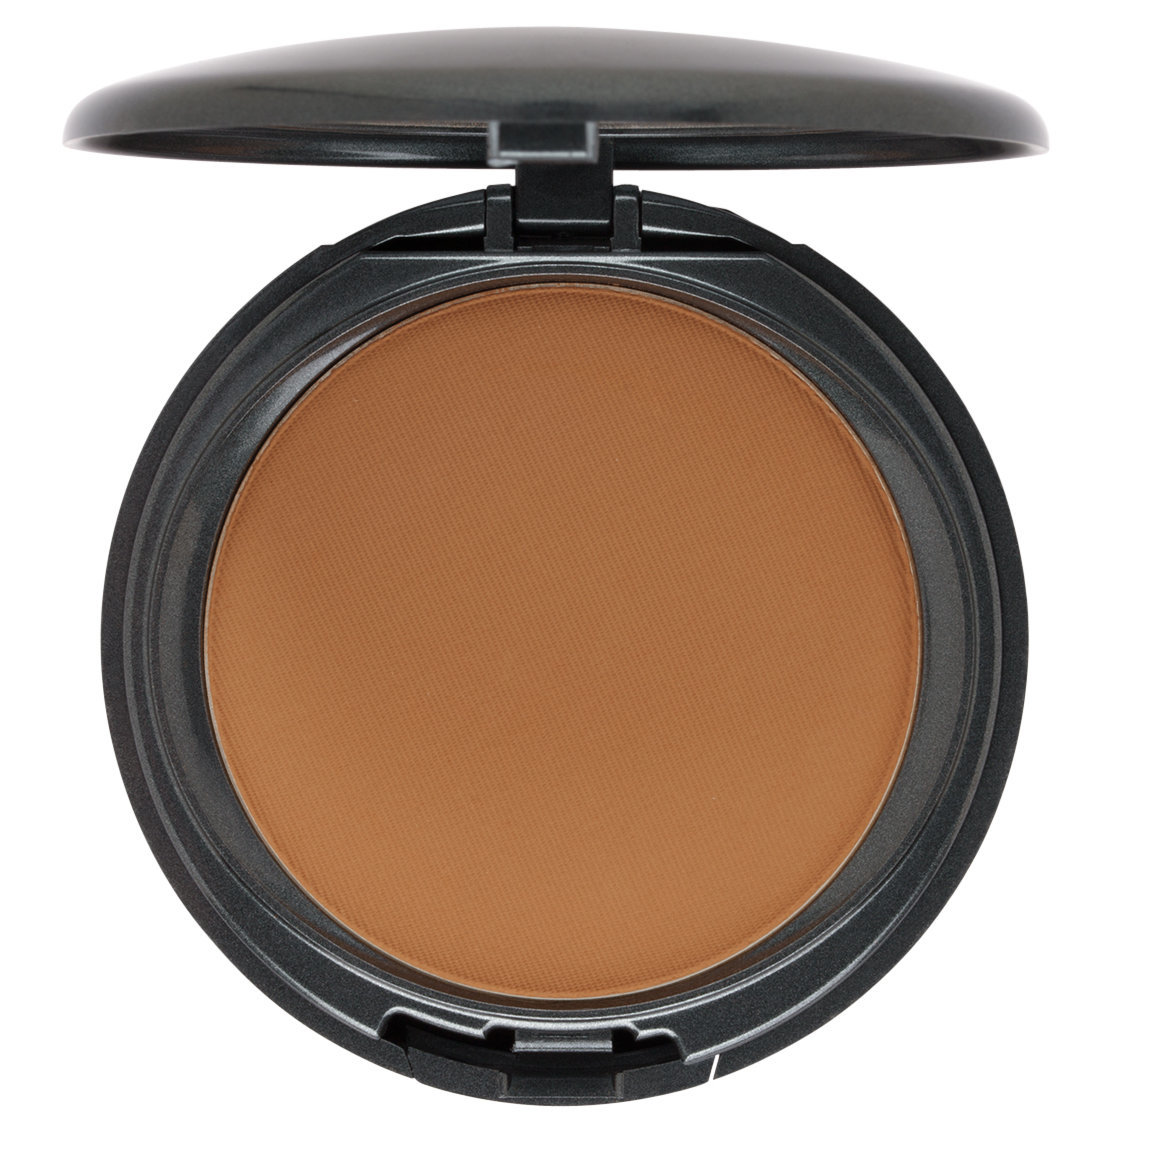 COVER | FX Pressed Mineral Foundation G90 product swatch.